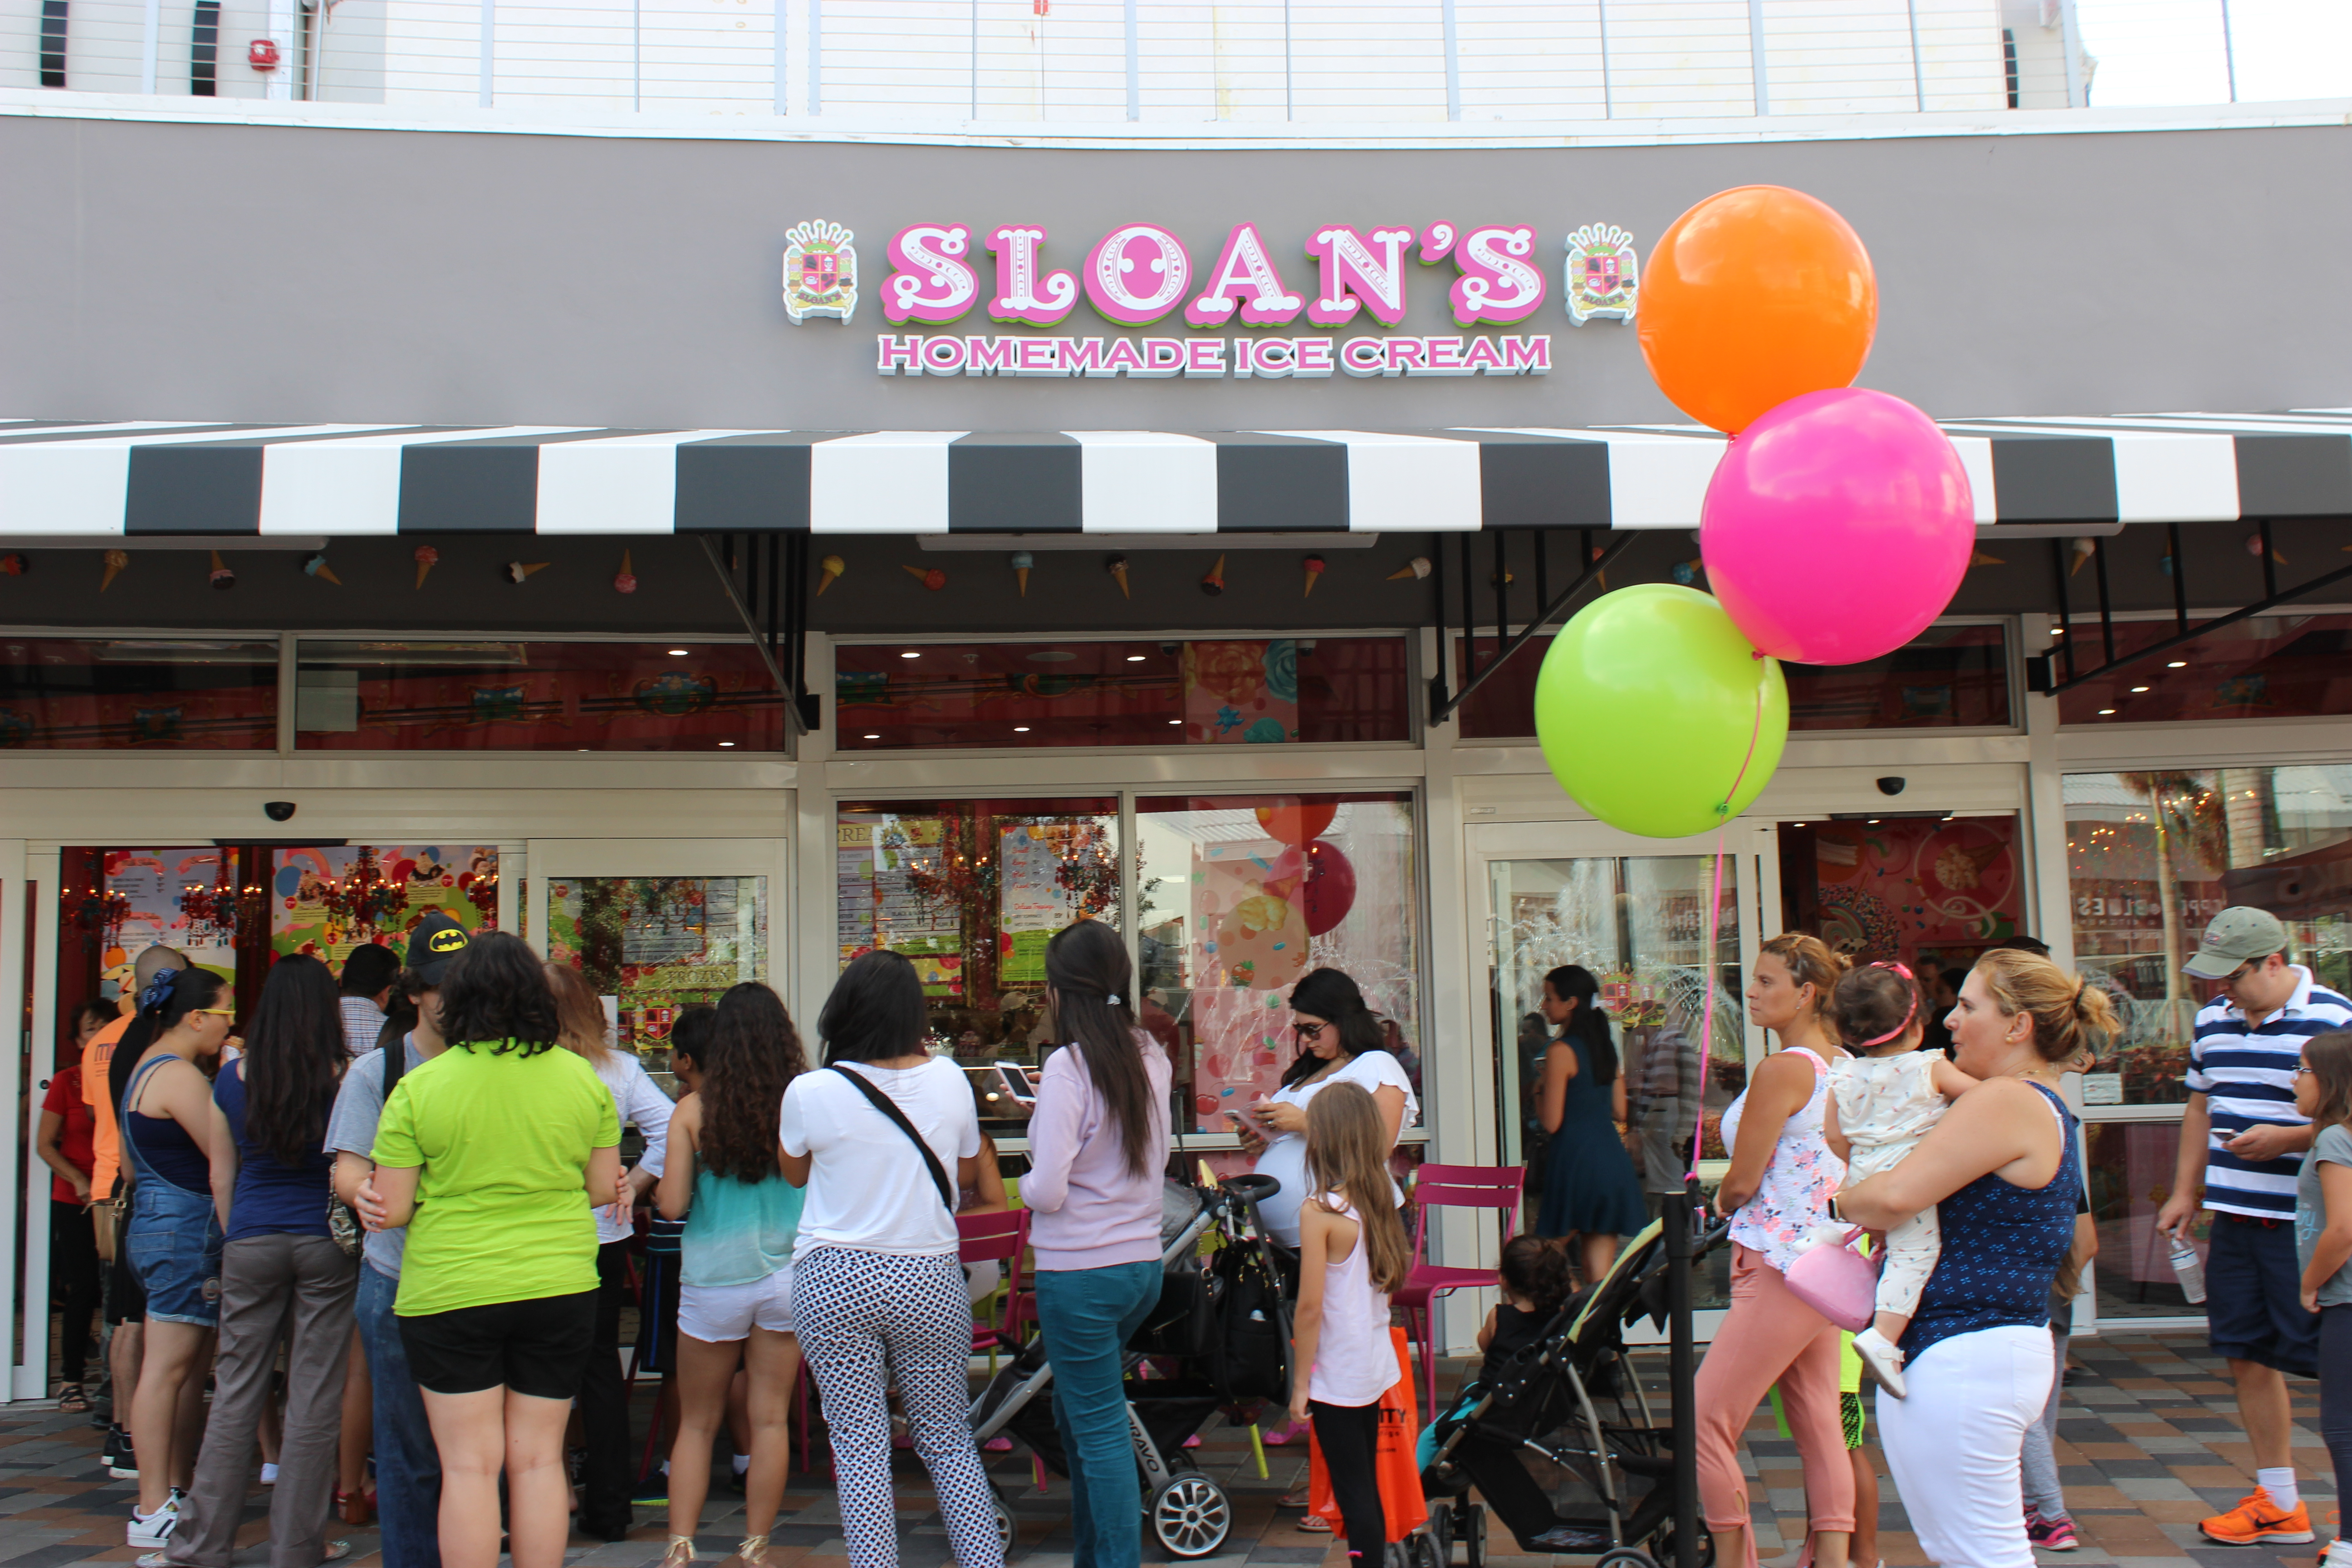 Sloan's Homemade Ice Cream Grand Opening, a Doral Chamber of Commerce event.